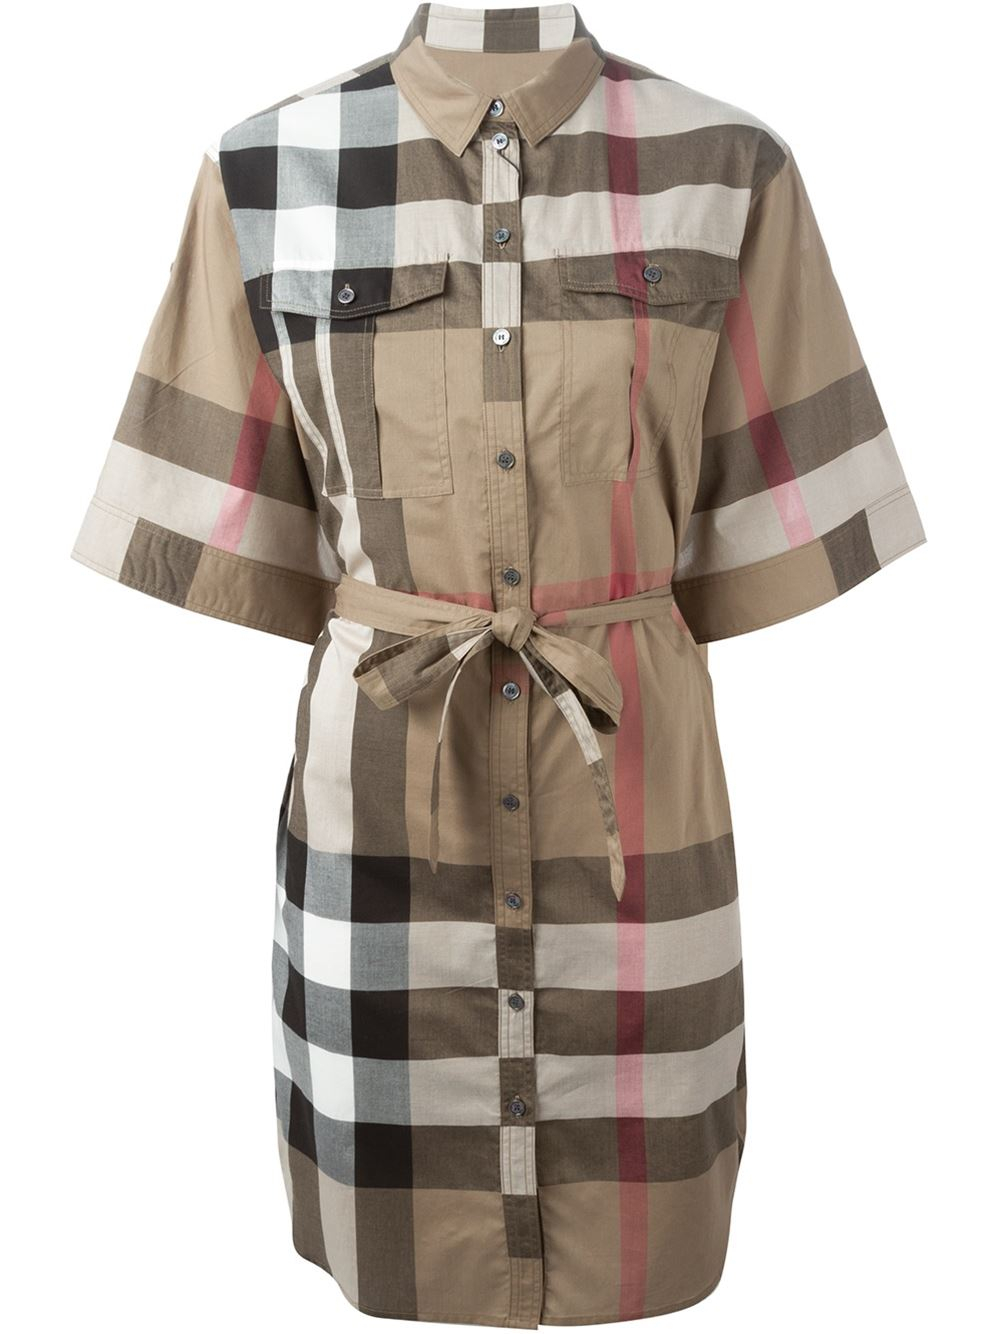 Burberry brit checked shirt dress in beige nude for Burberry brit checked shirt